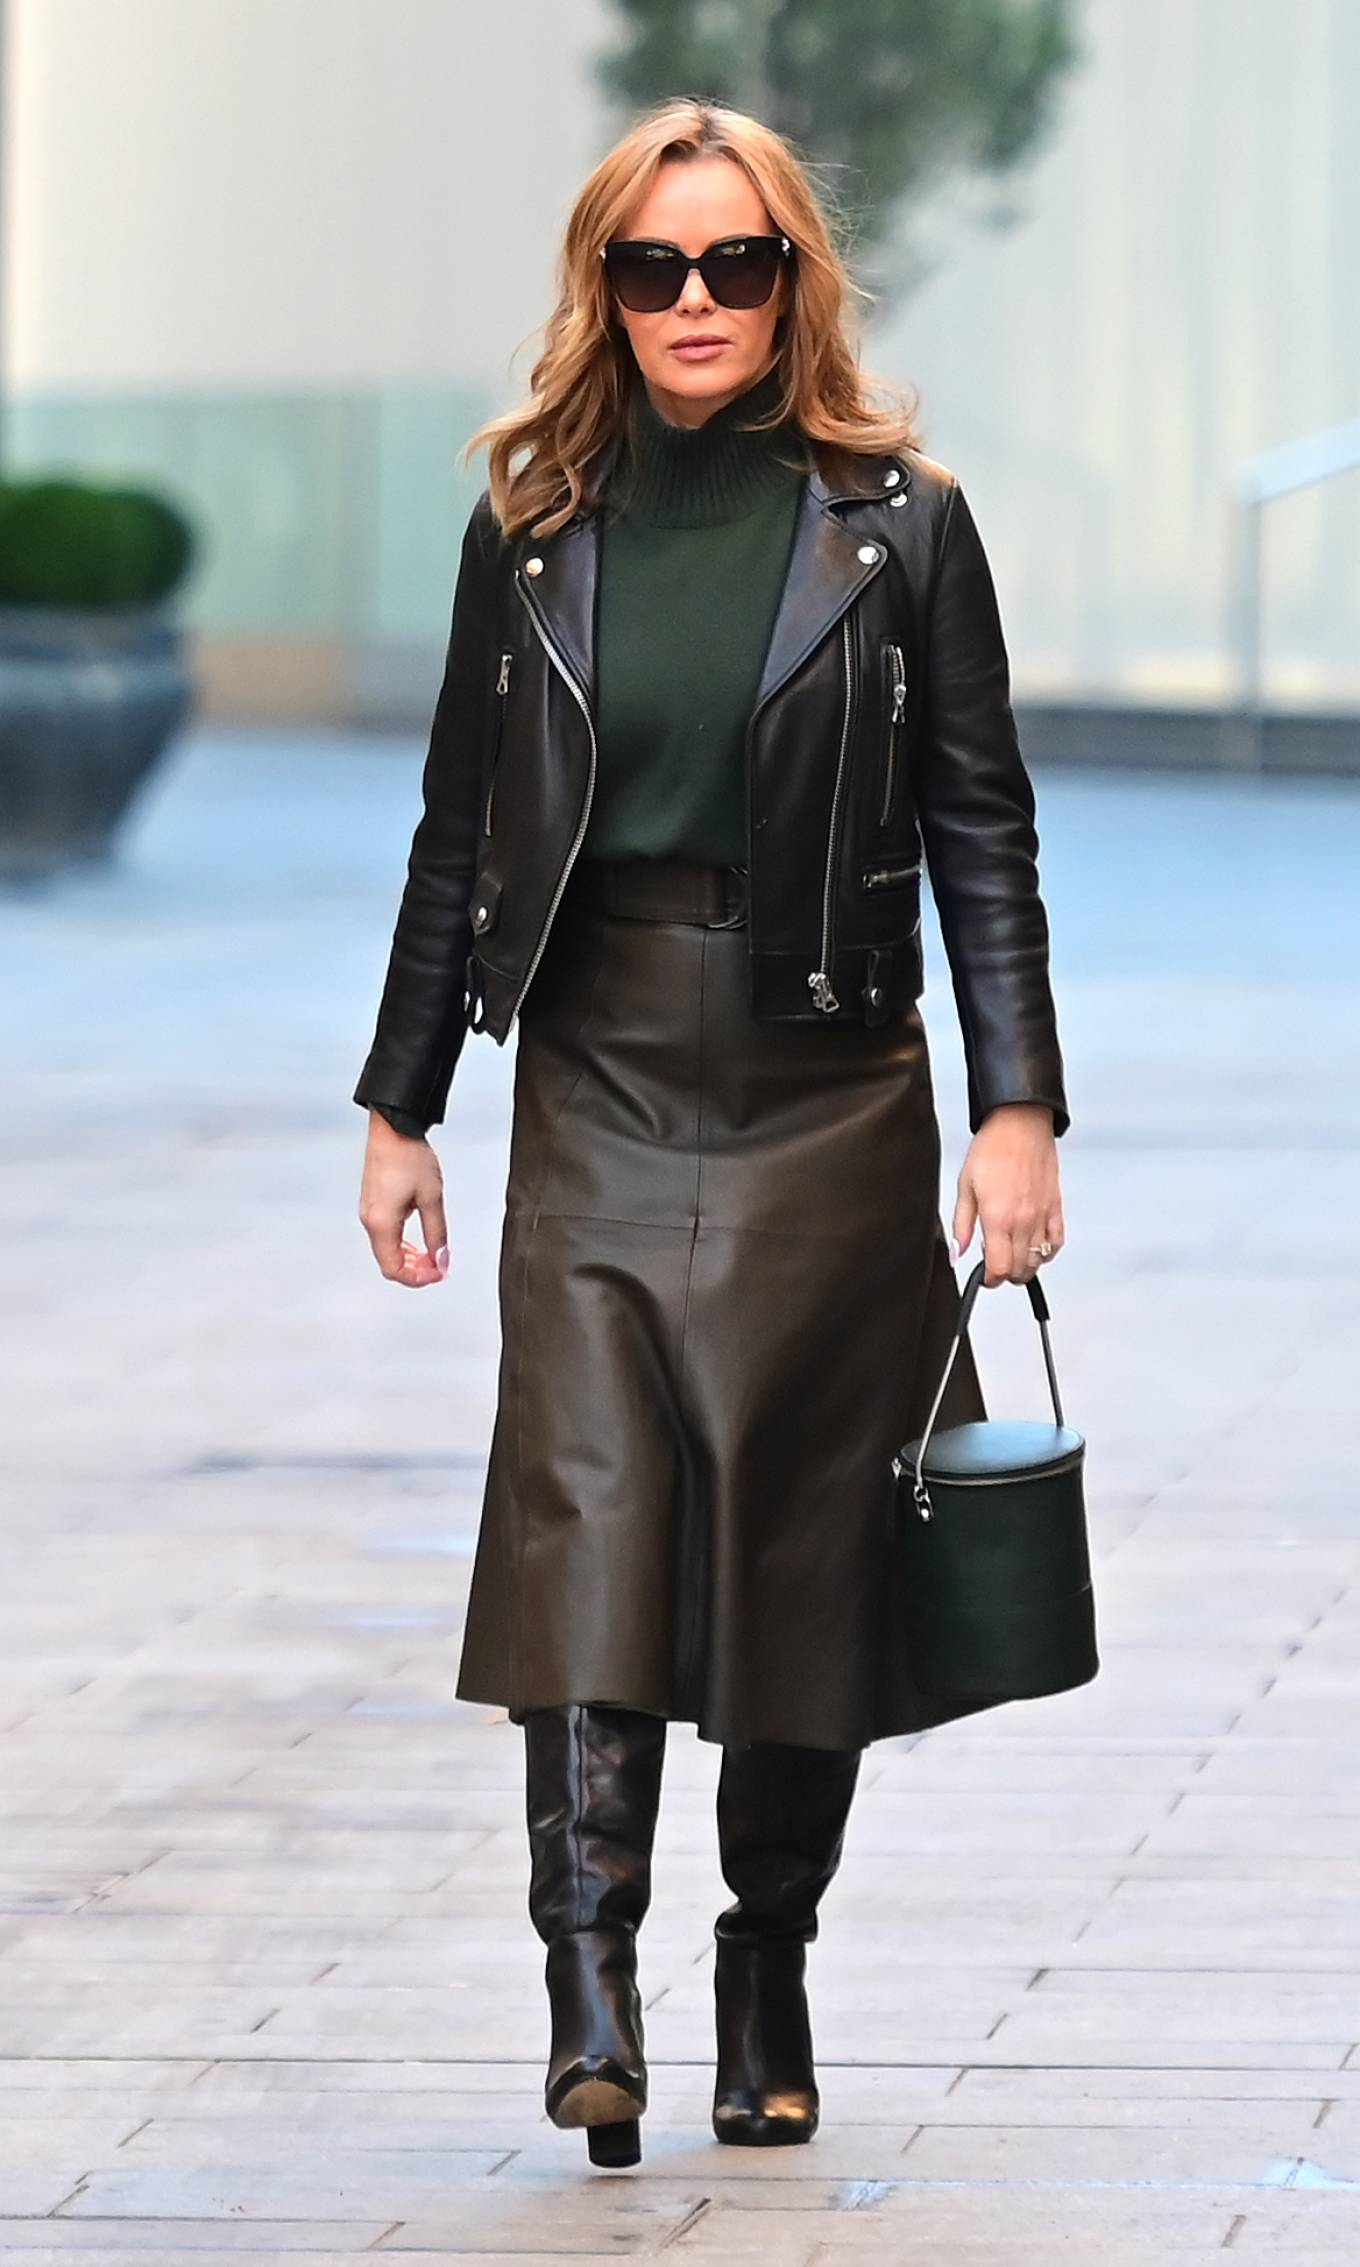 Amanda Holden - In leather skirt and knee high boots at Heart radio in London